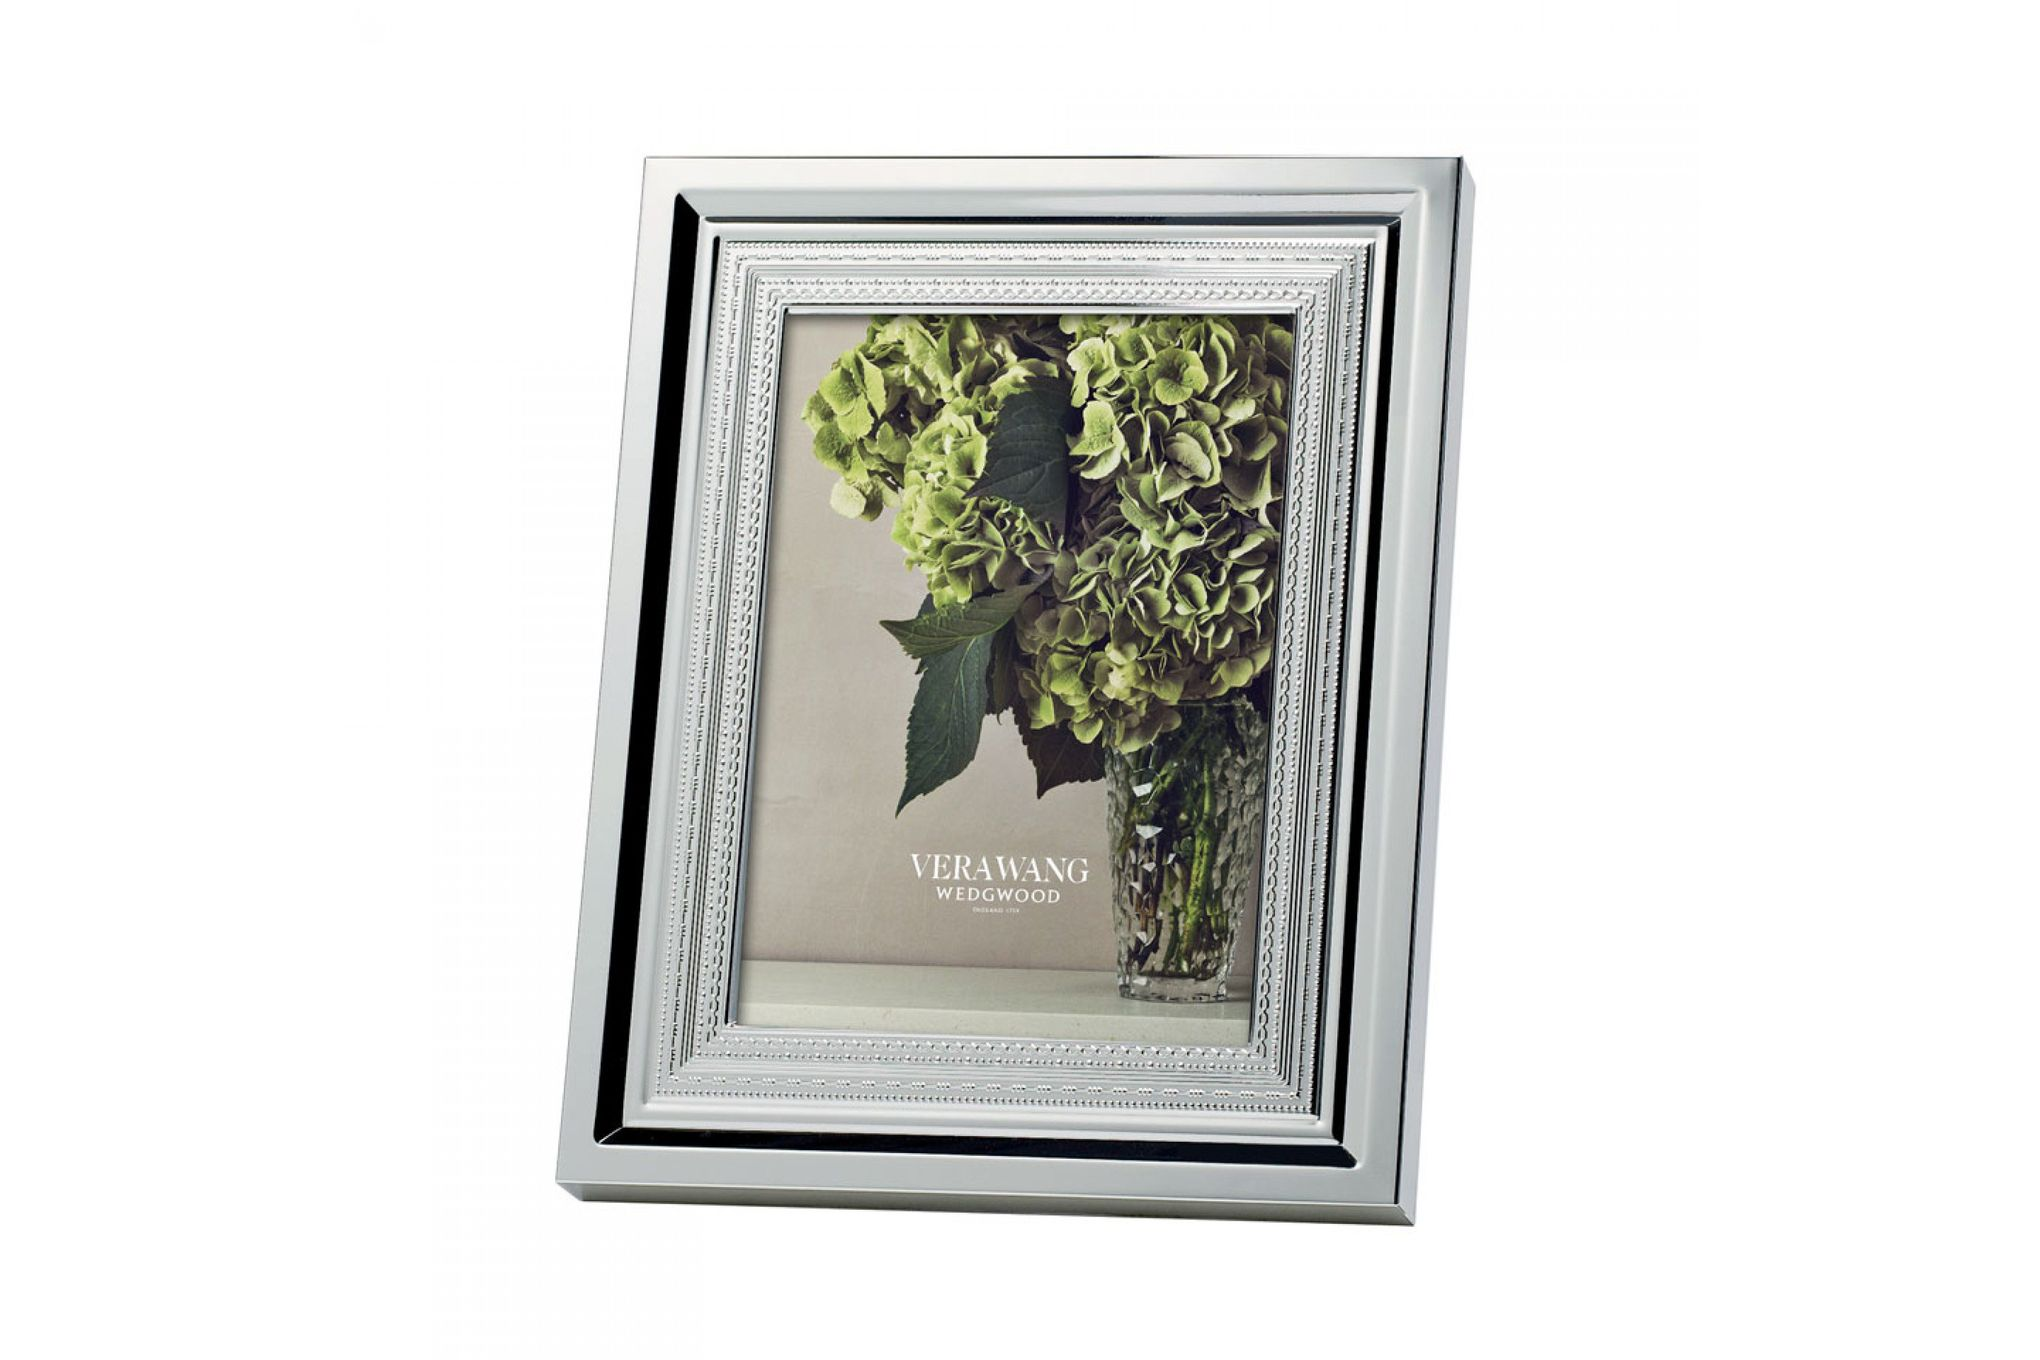 """Vera Wang for Wedgwood Gifts & Accessories Photo Frame With Love 5 x 7"""" thumb 1"""